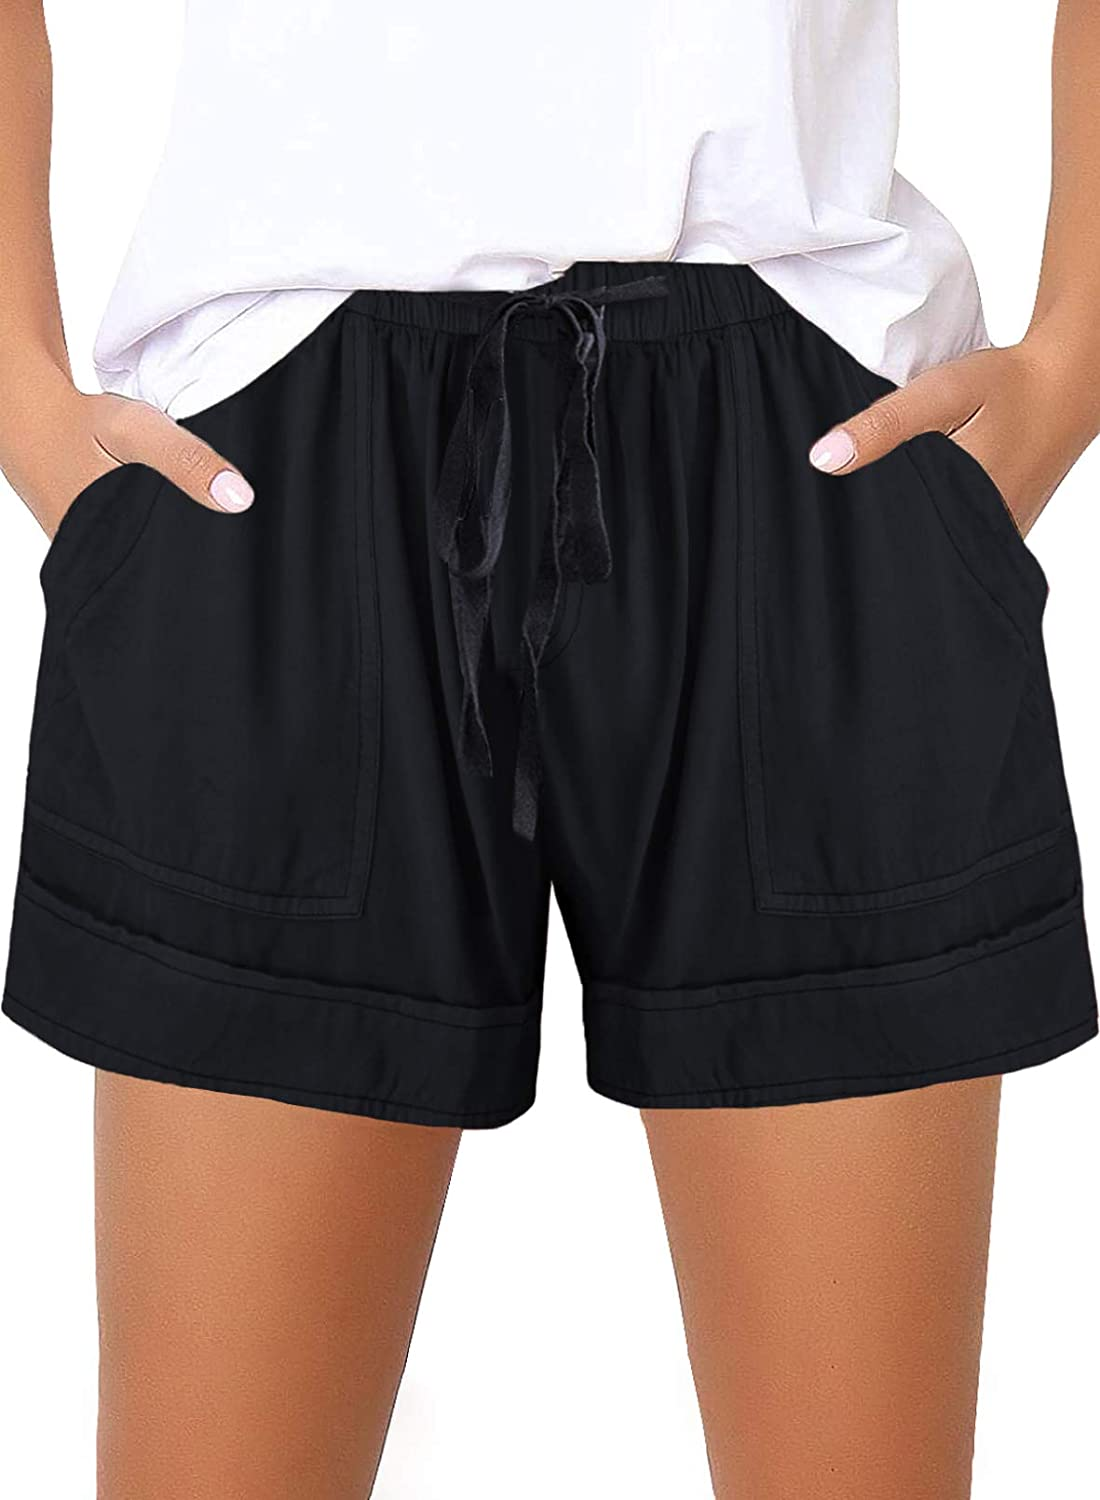 Asvivid Girls Casual Drawstring Elastic Shorts Summer Waist Dallas Mall Limited Special Price with